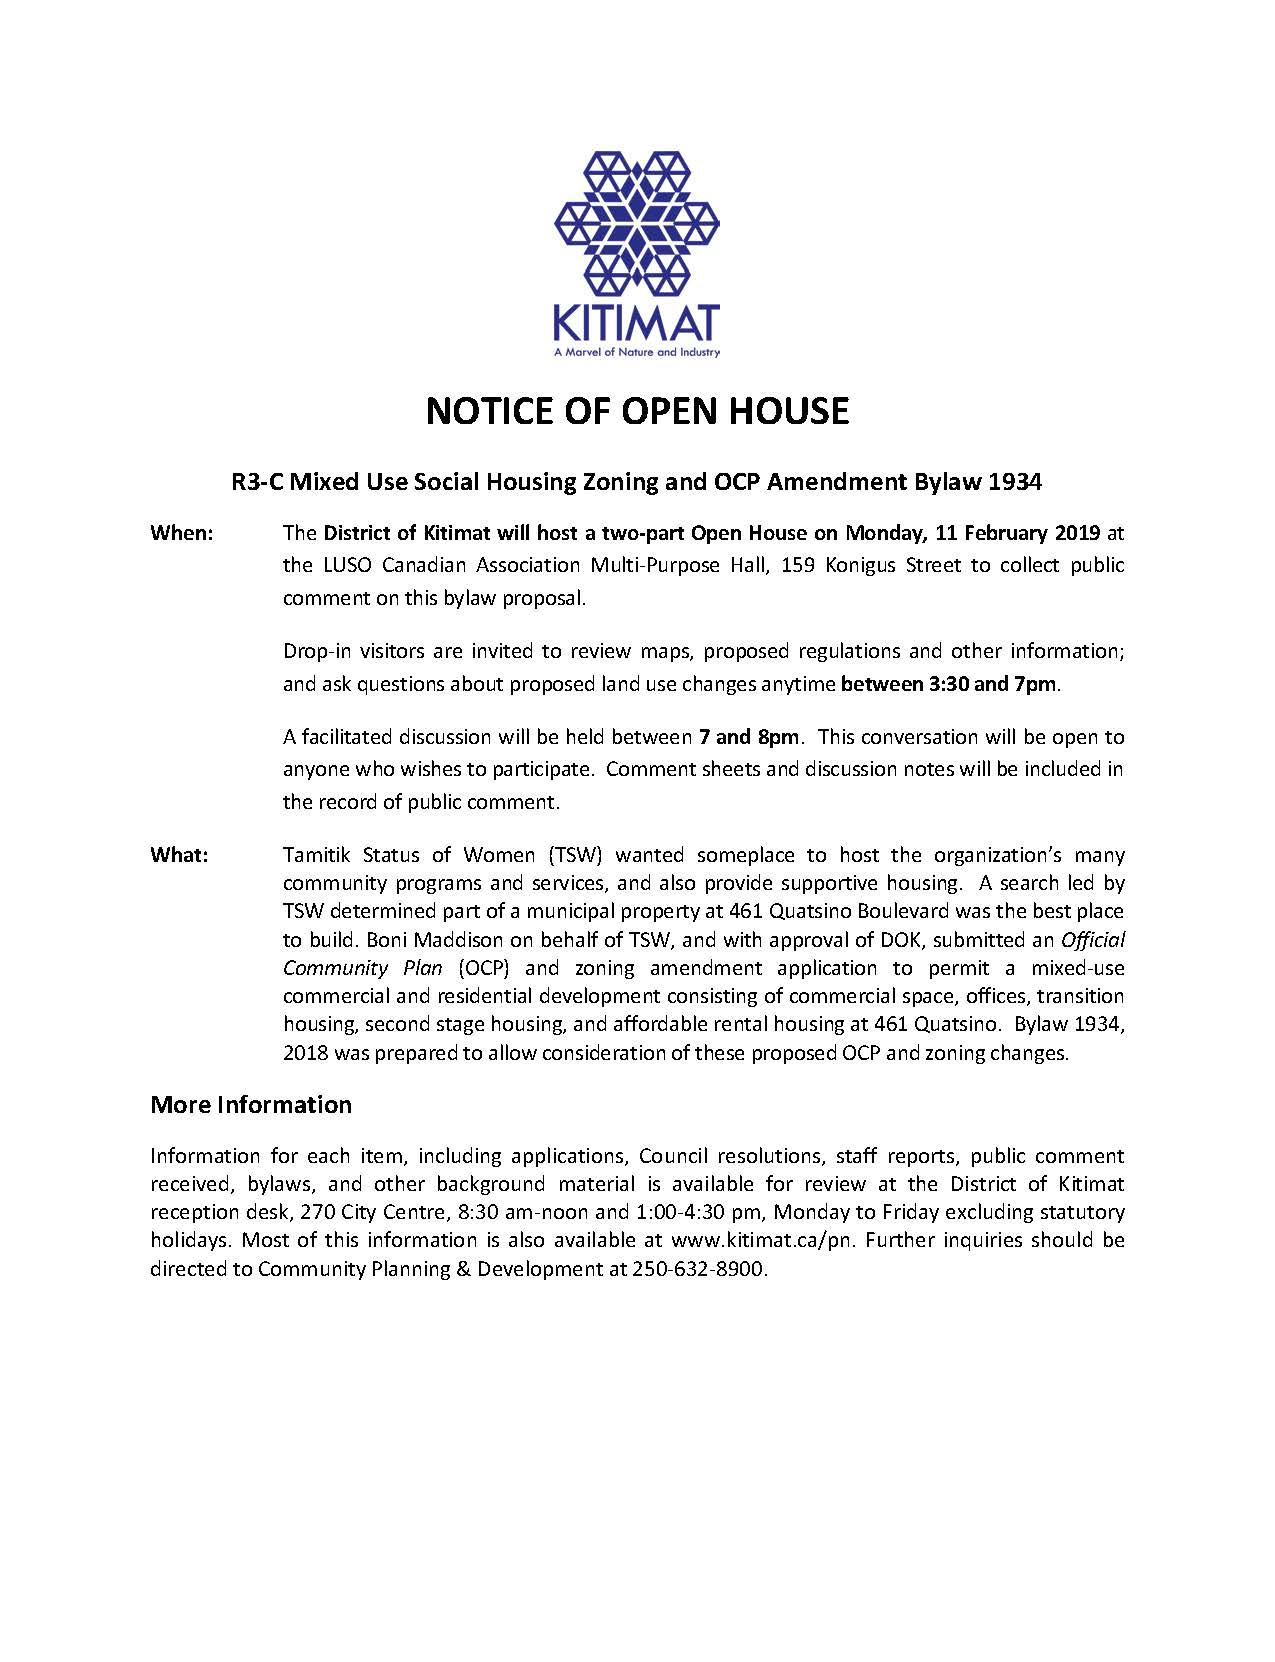 Notice of Open House, Feb 11, 2019